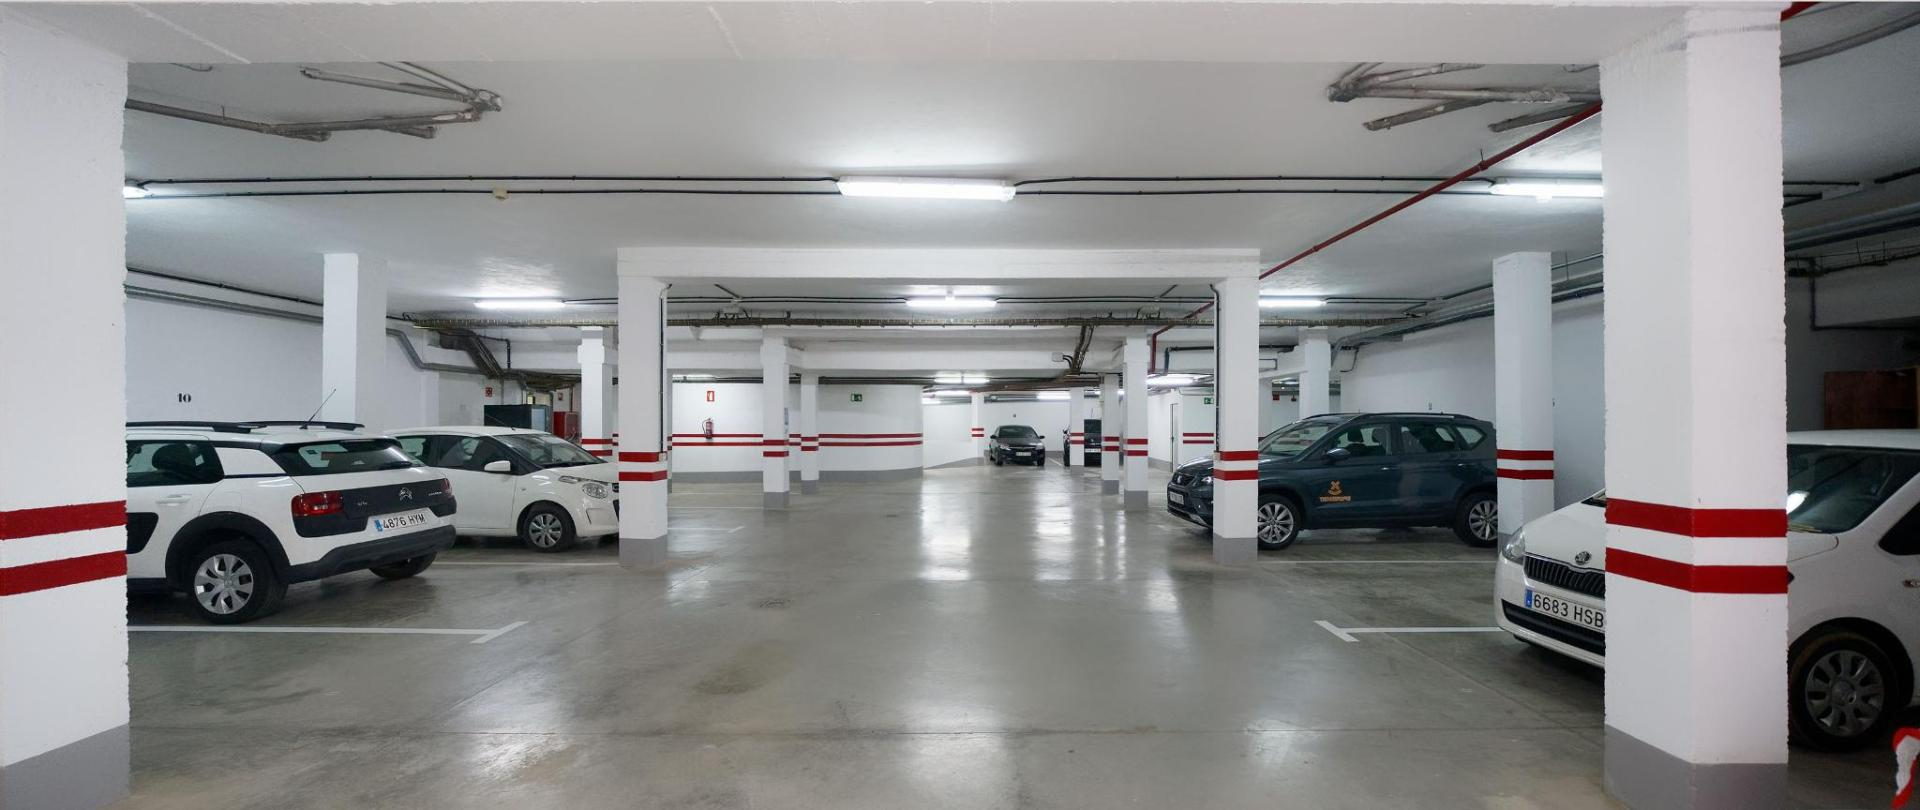 Parking Garage Igramar Morro Jable